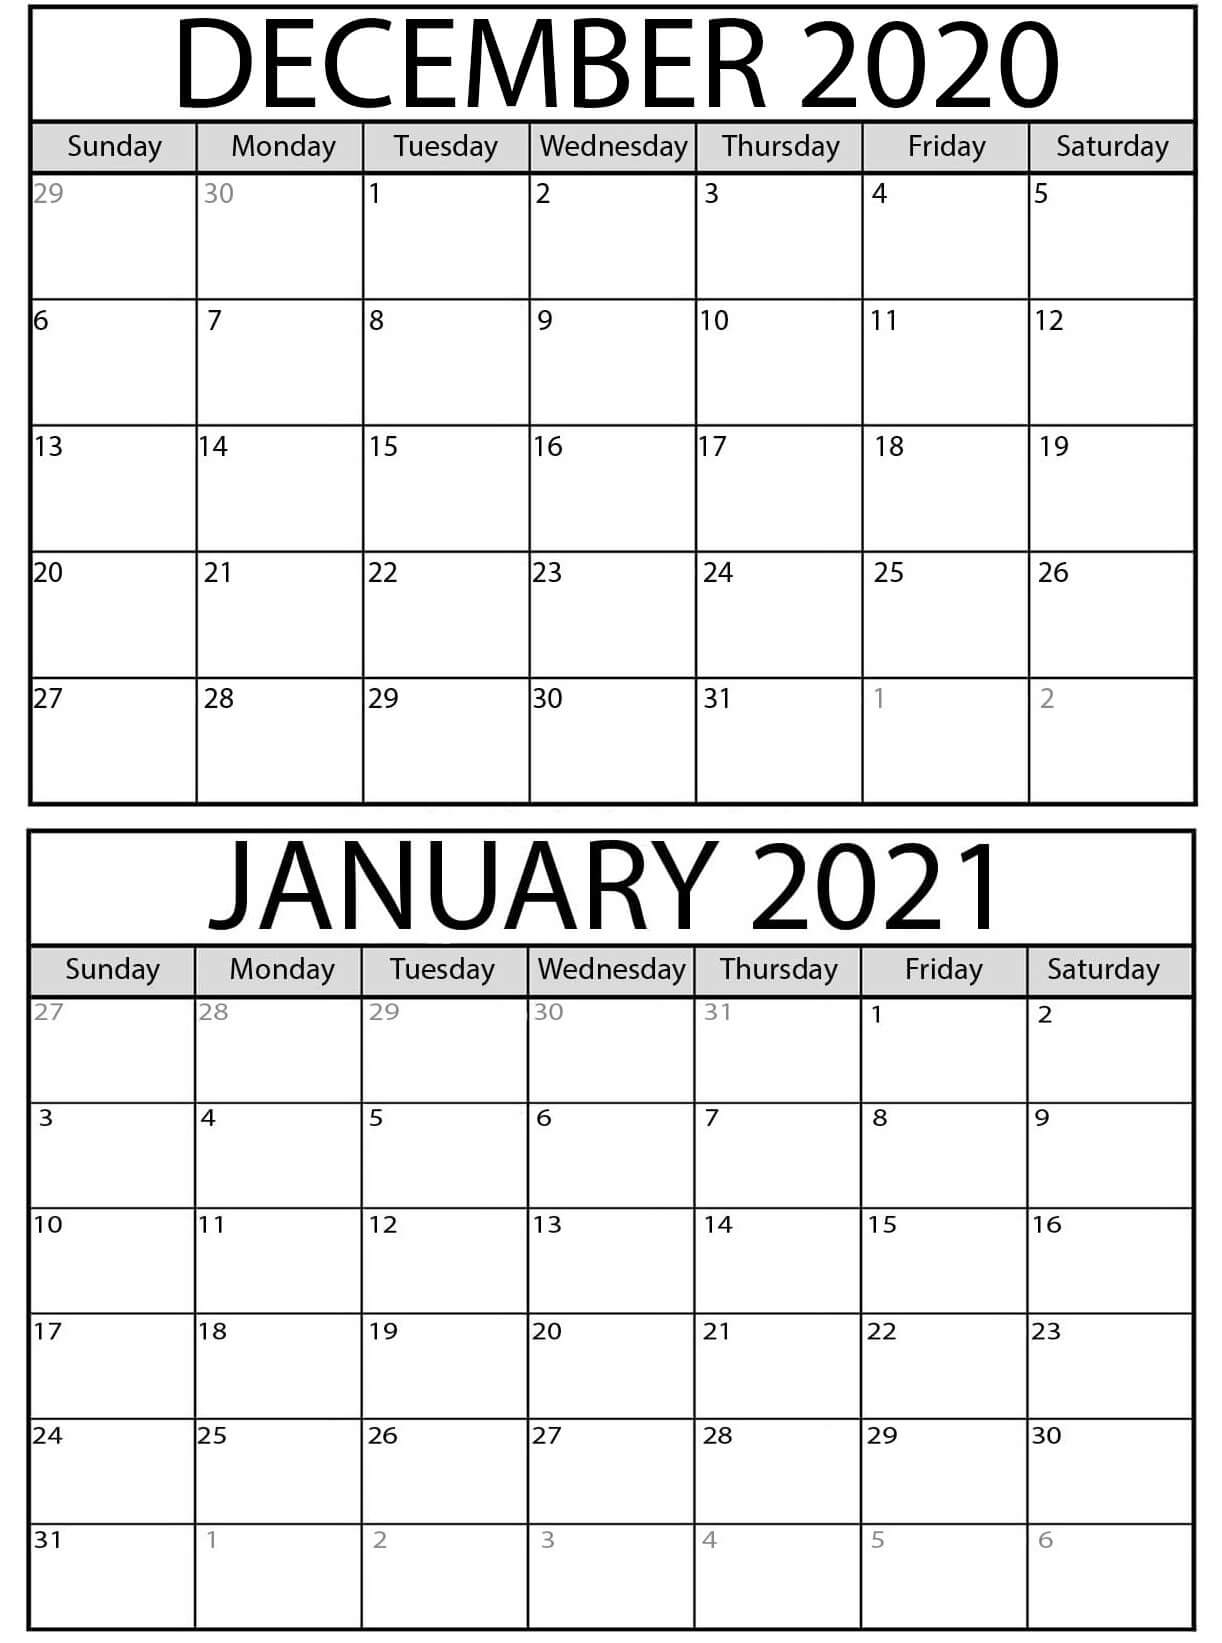 Blank 2020 December 2021 January Calendar With Holidays